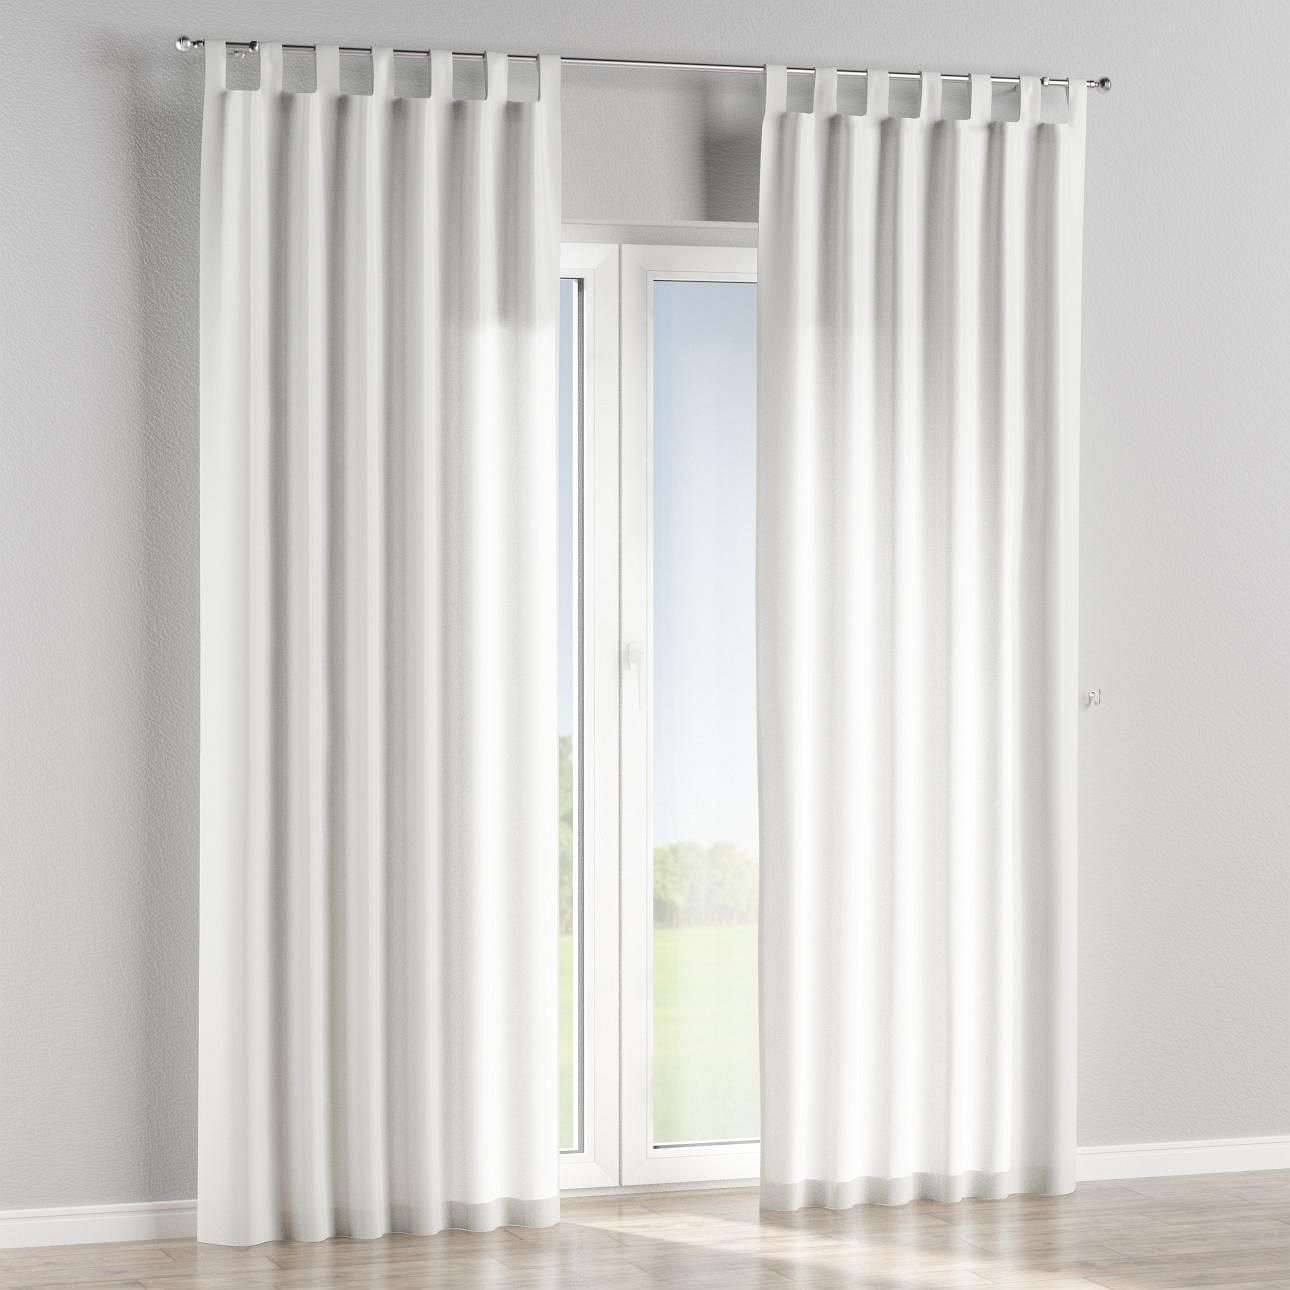 Tab top lined curtains in collection SALE, fabric: 137-59